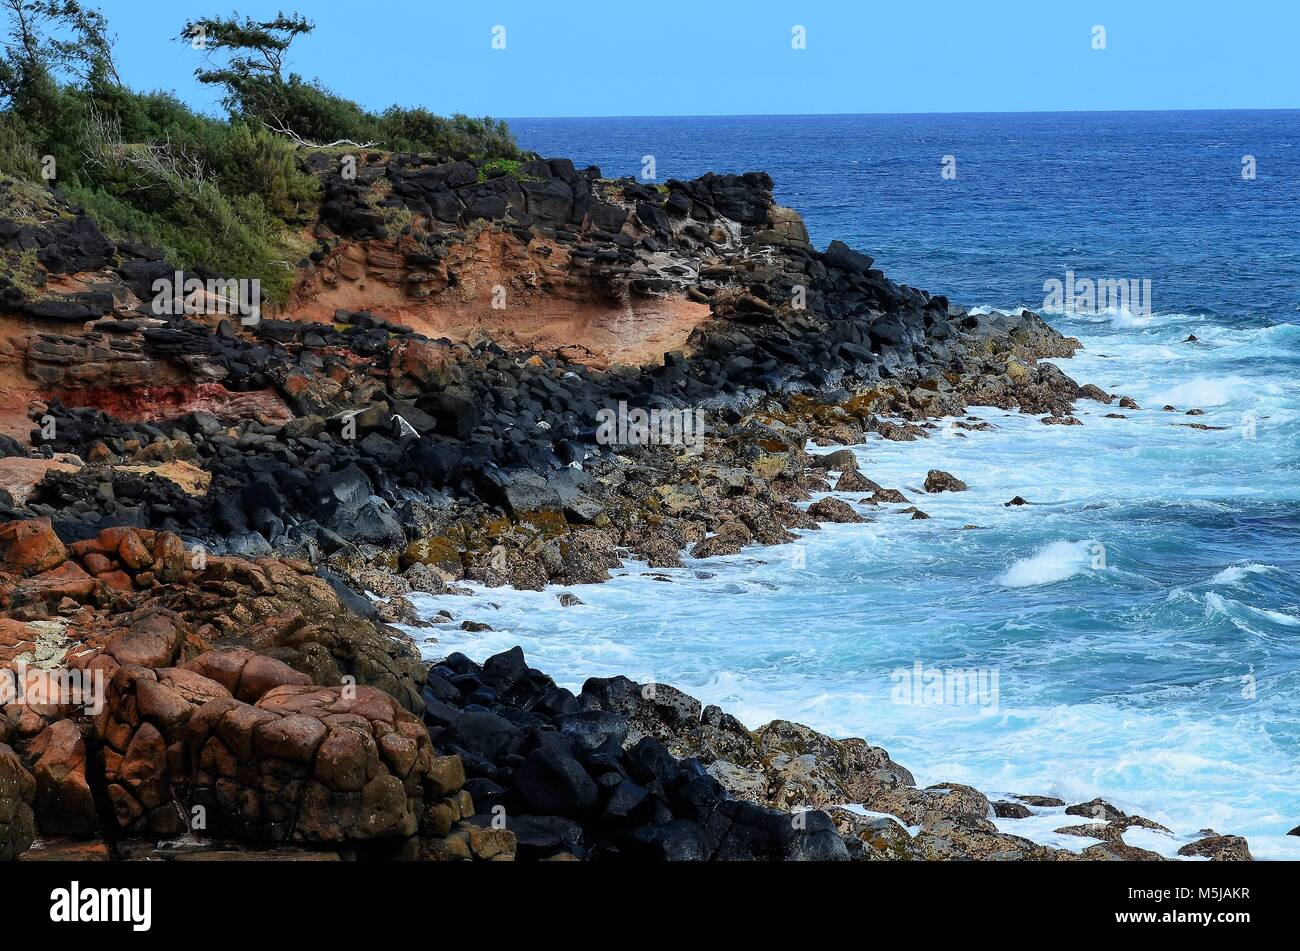 Black volcanic rock adorns the rocky beach, with pounding waves crashing up against the rocks on the shores of Hawaii - Stock Image